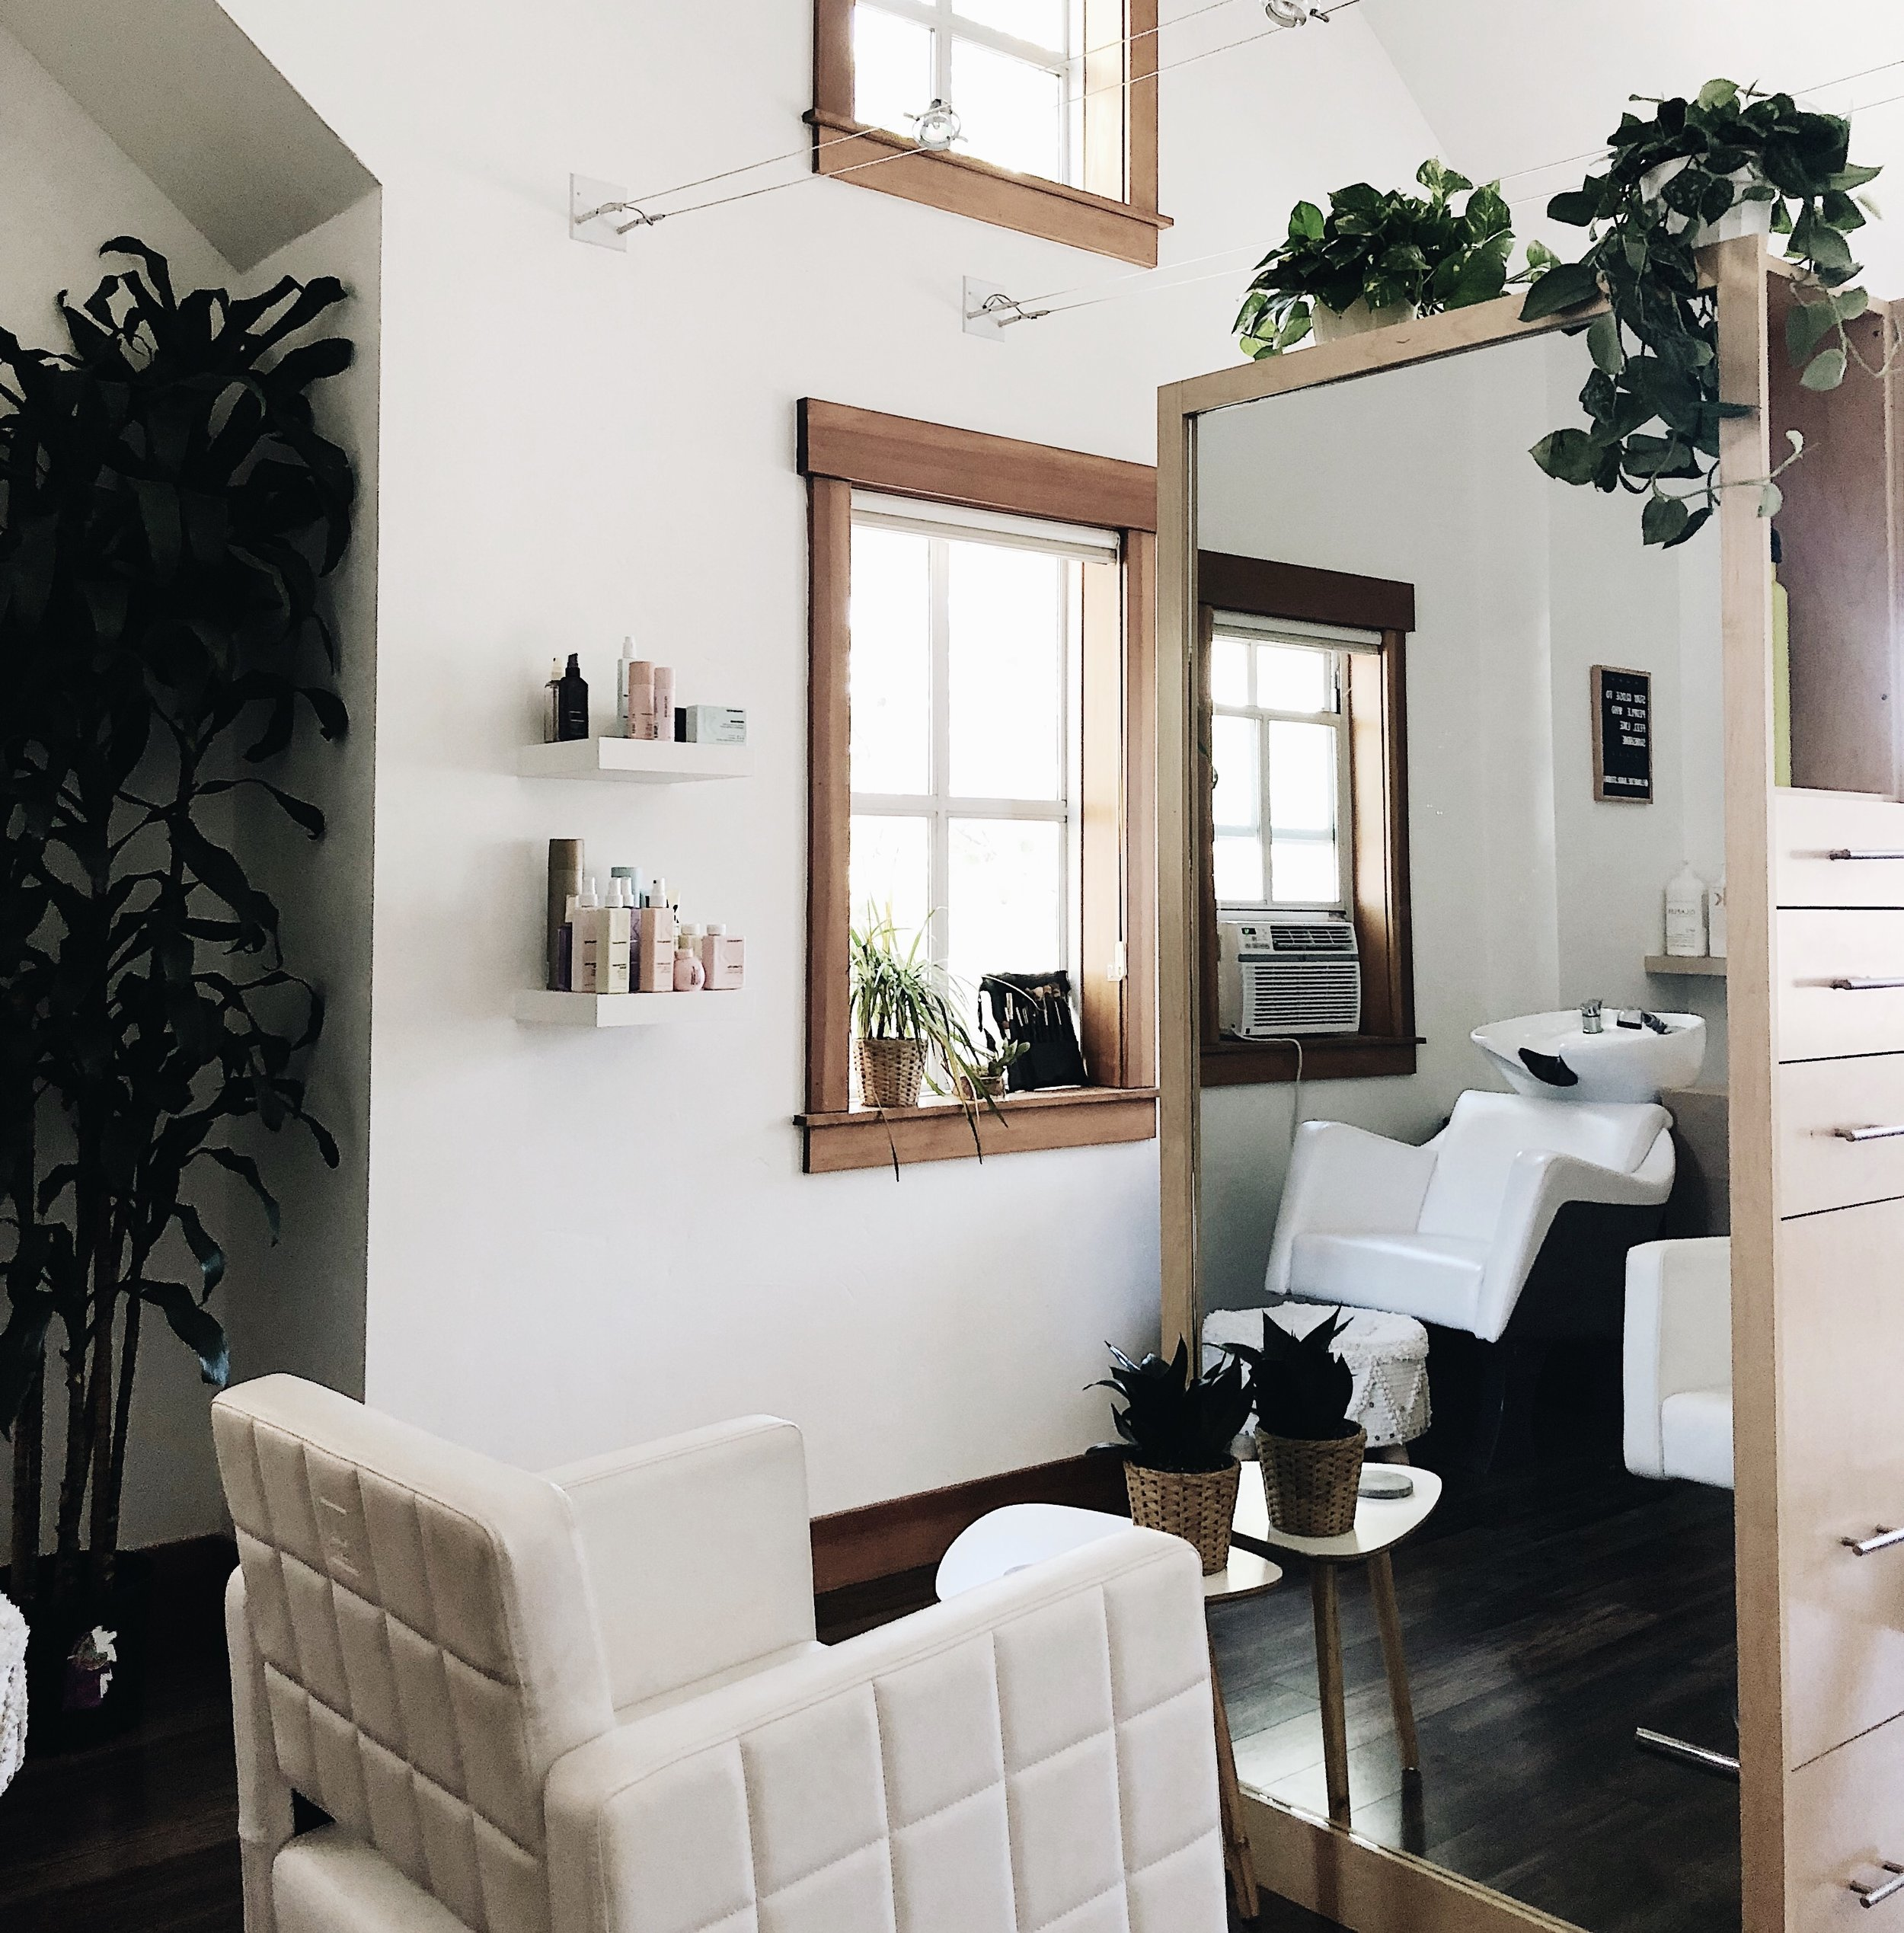 creating an experience as unique & beautiful as you - Lumiere Hair Studio seeks to bring beauty into every corner of your life, by transforming your salon experience into one that inspires & uplifts you from the moment you leave until your next visit. We are so excited to pamper you!